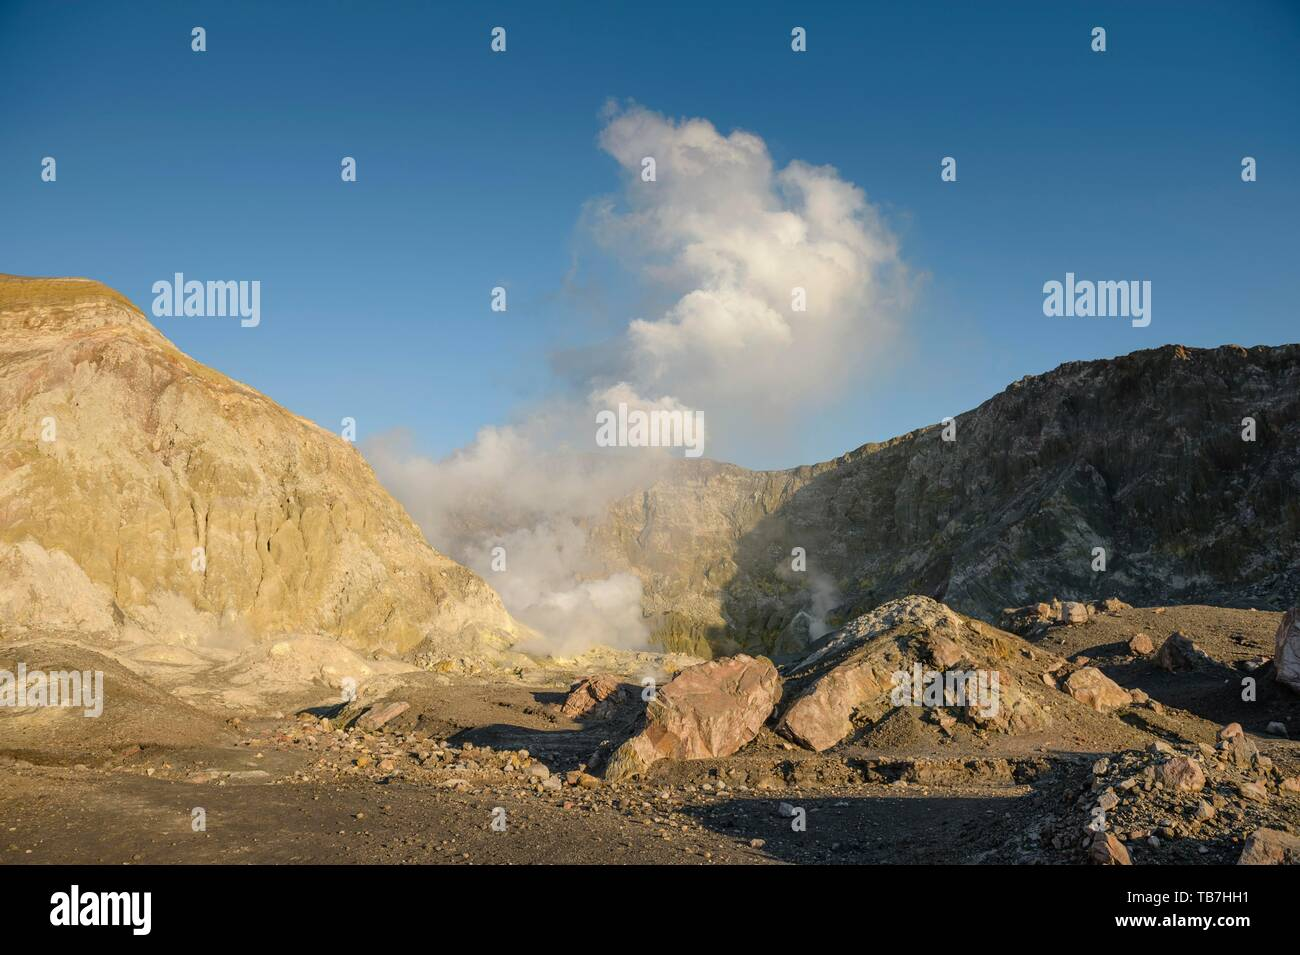 Rock formations and fumaroles on the volcanic island of White Island with rising steam from the crater, Whakaari, Volcanic Island, Bay of Plenty - Stock Image